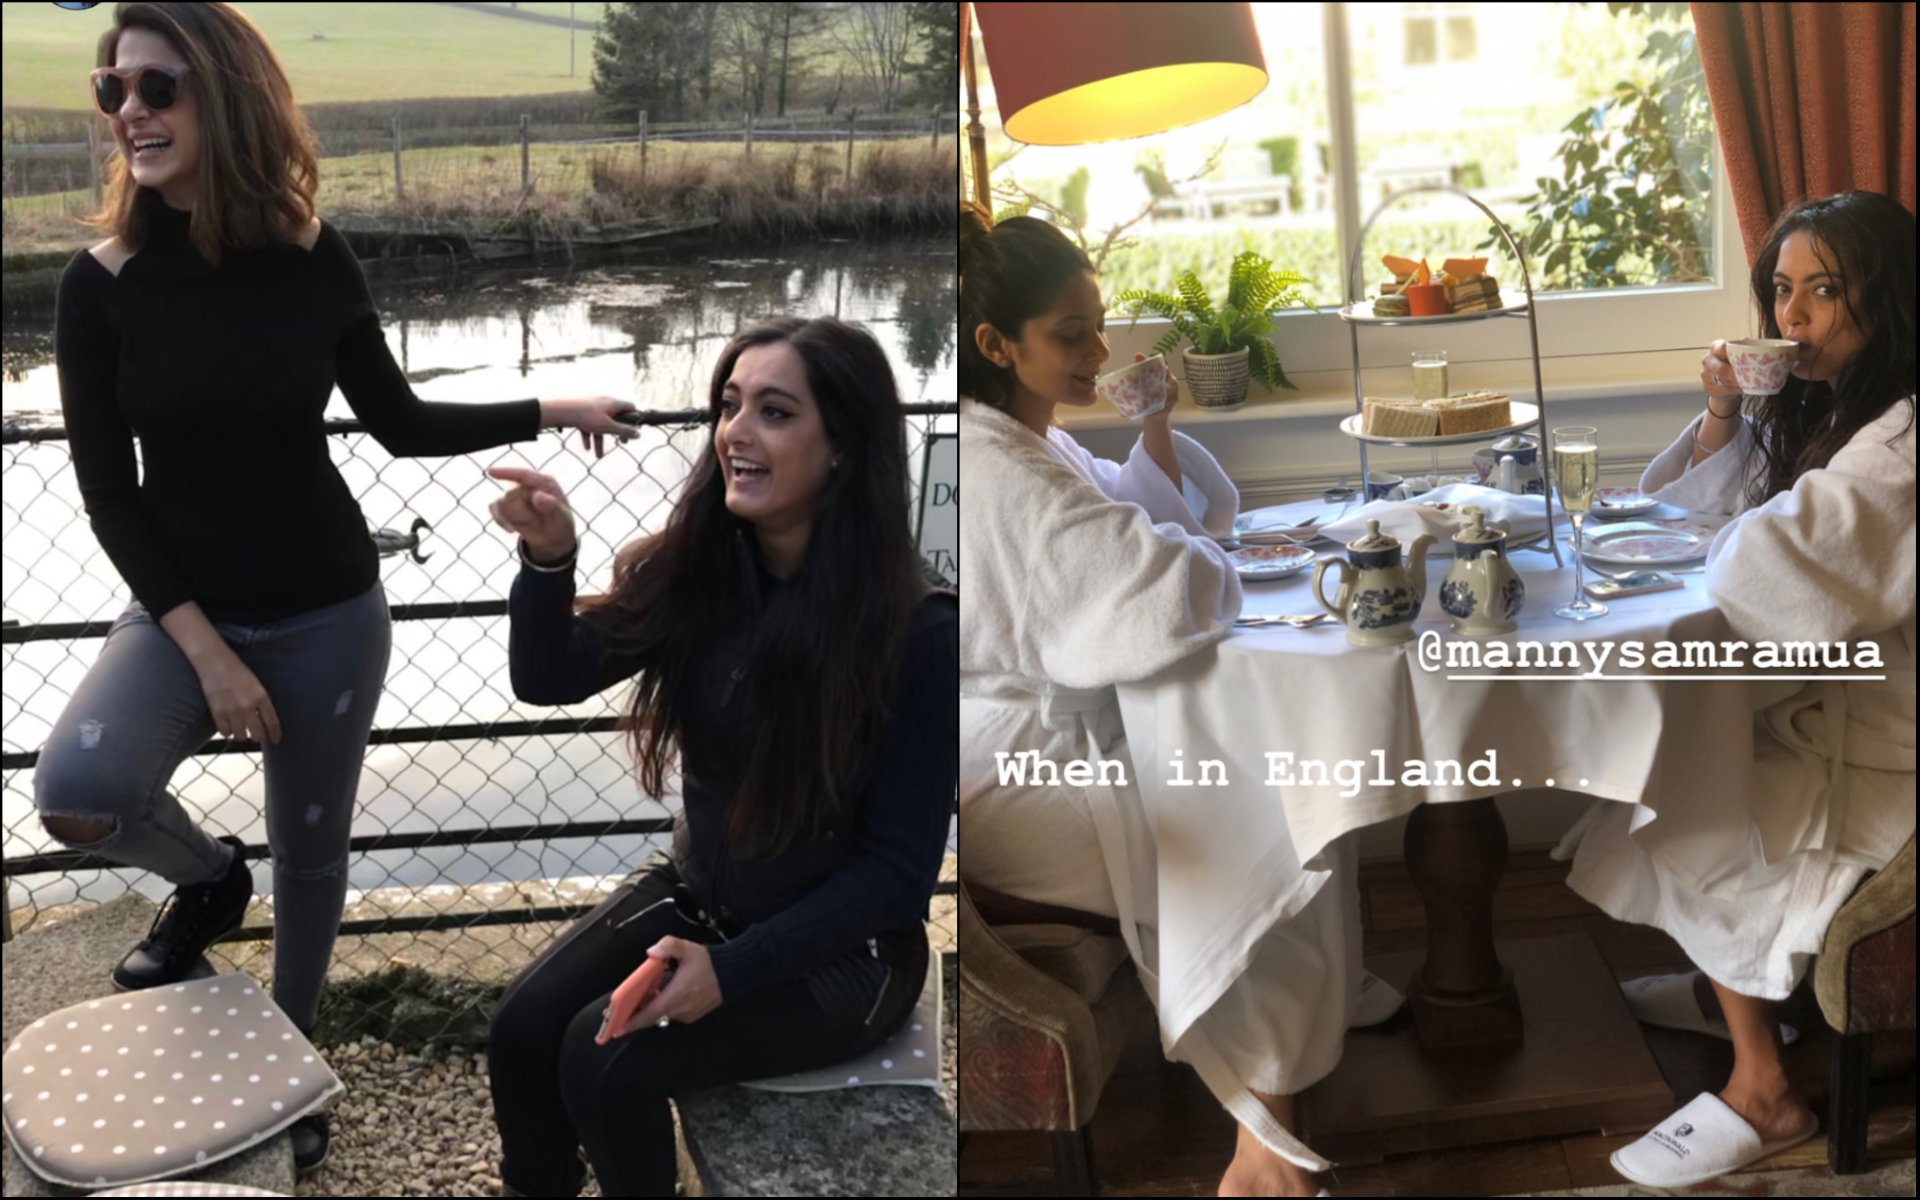 3-jennifer-winget-with-friend -on-vacation